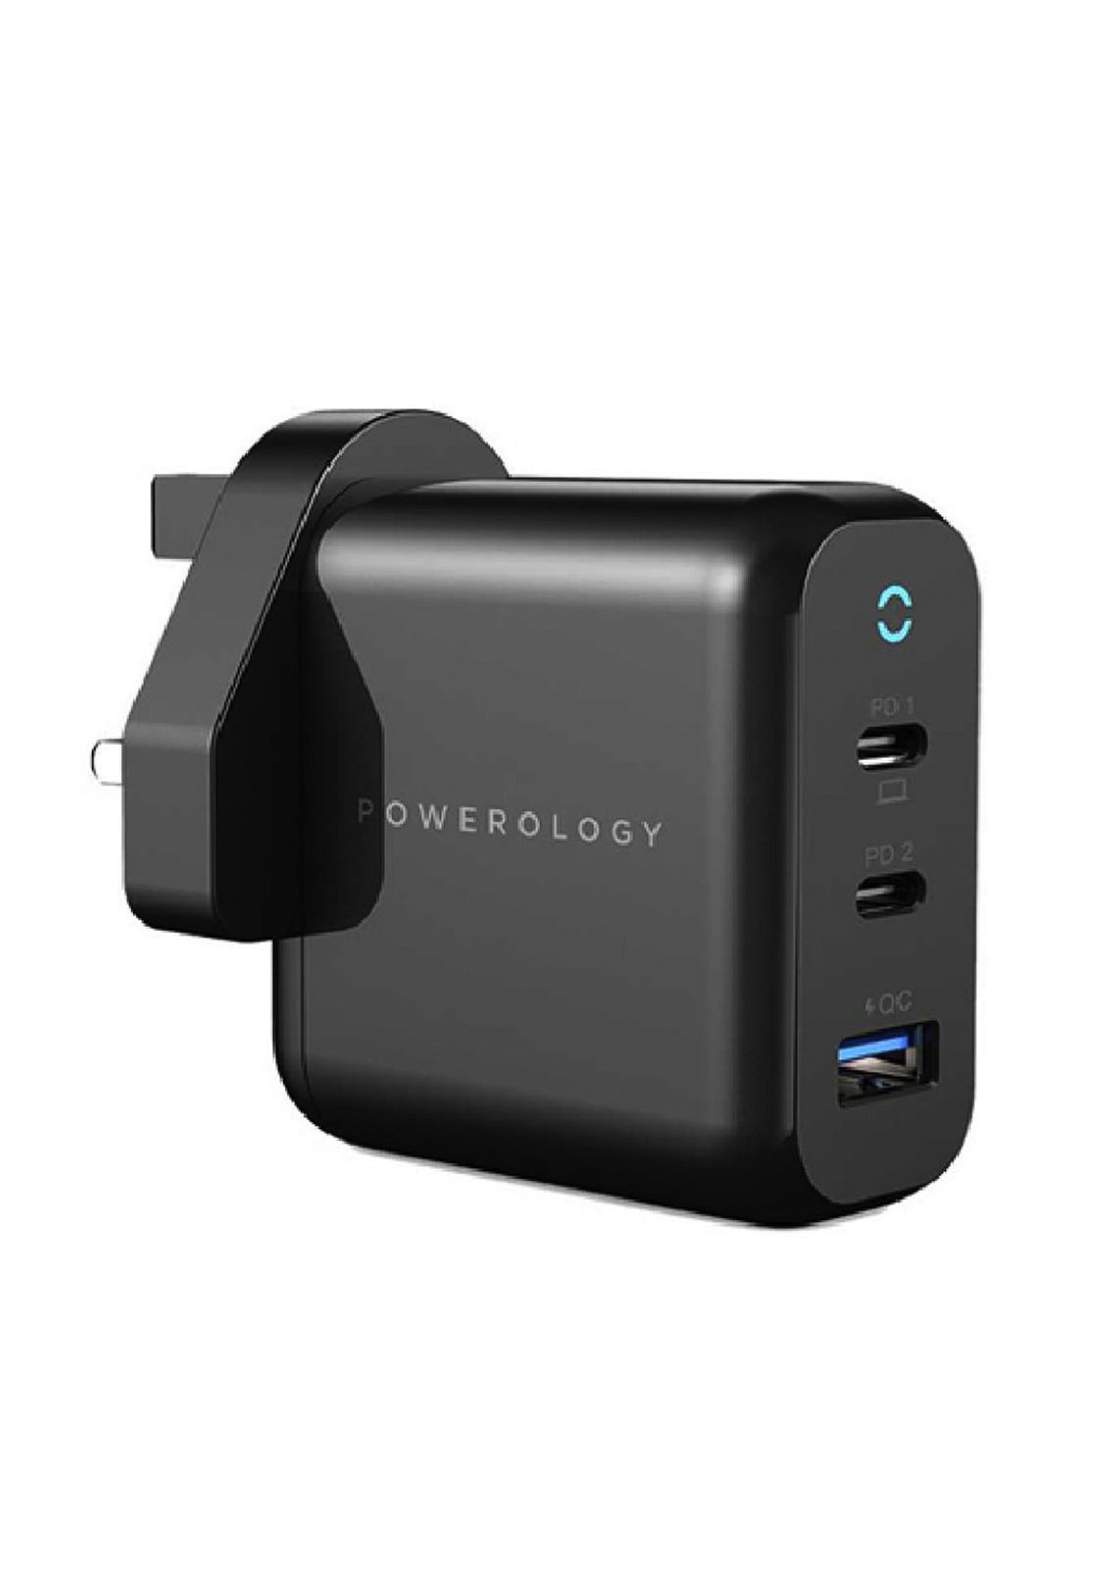 Powerology P65PDWUKBK 3-Port 65W Charger with PD - Black شاحن